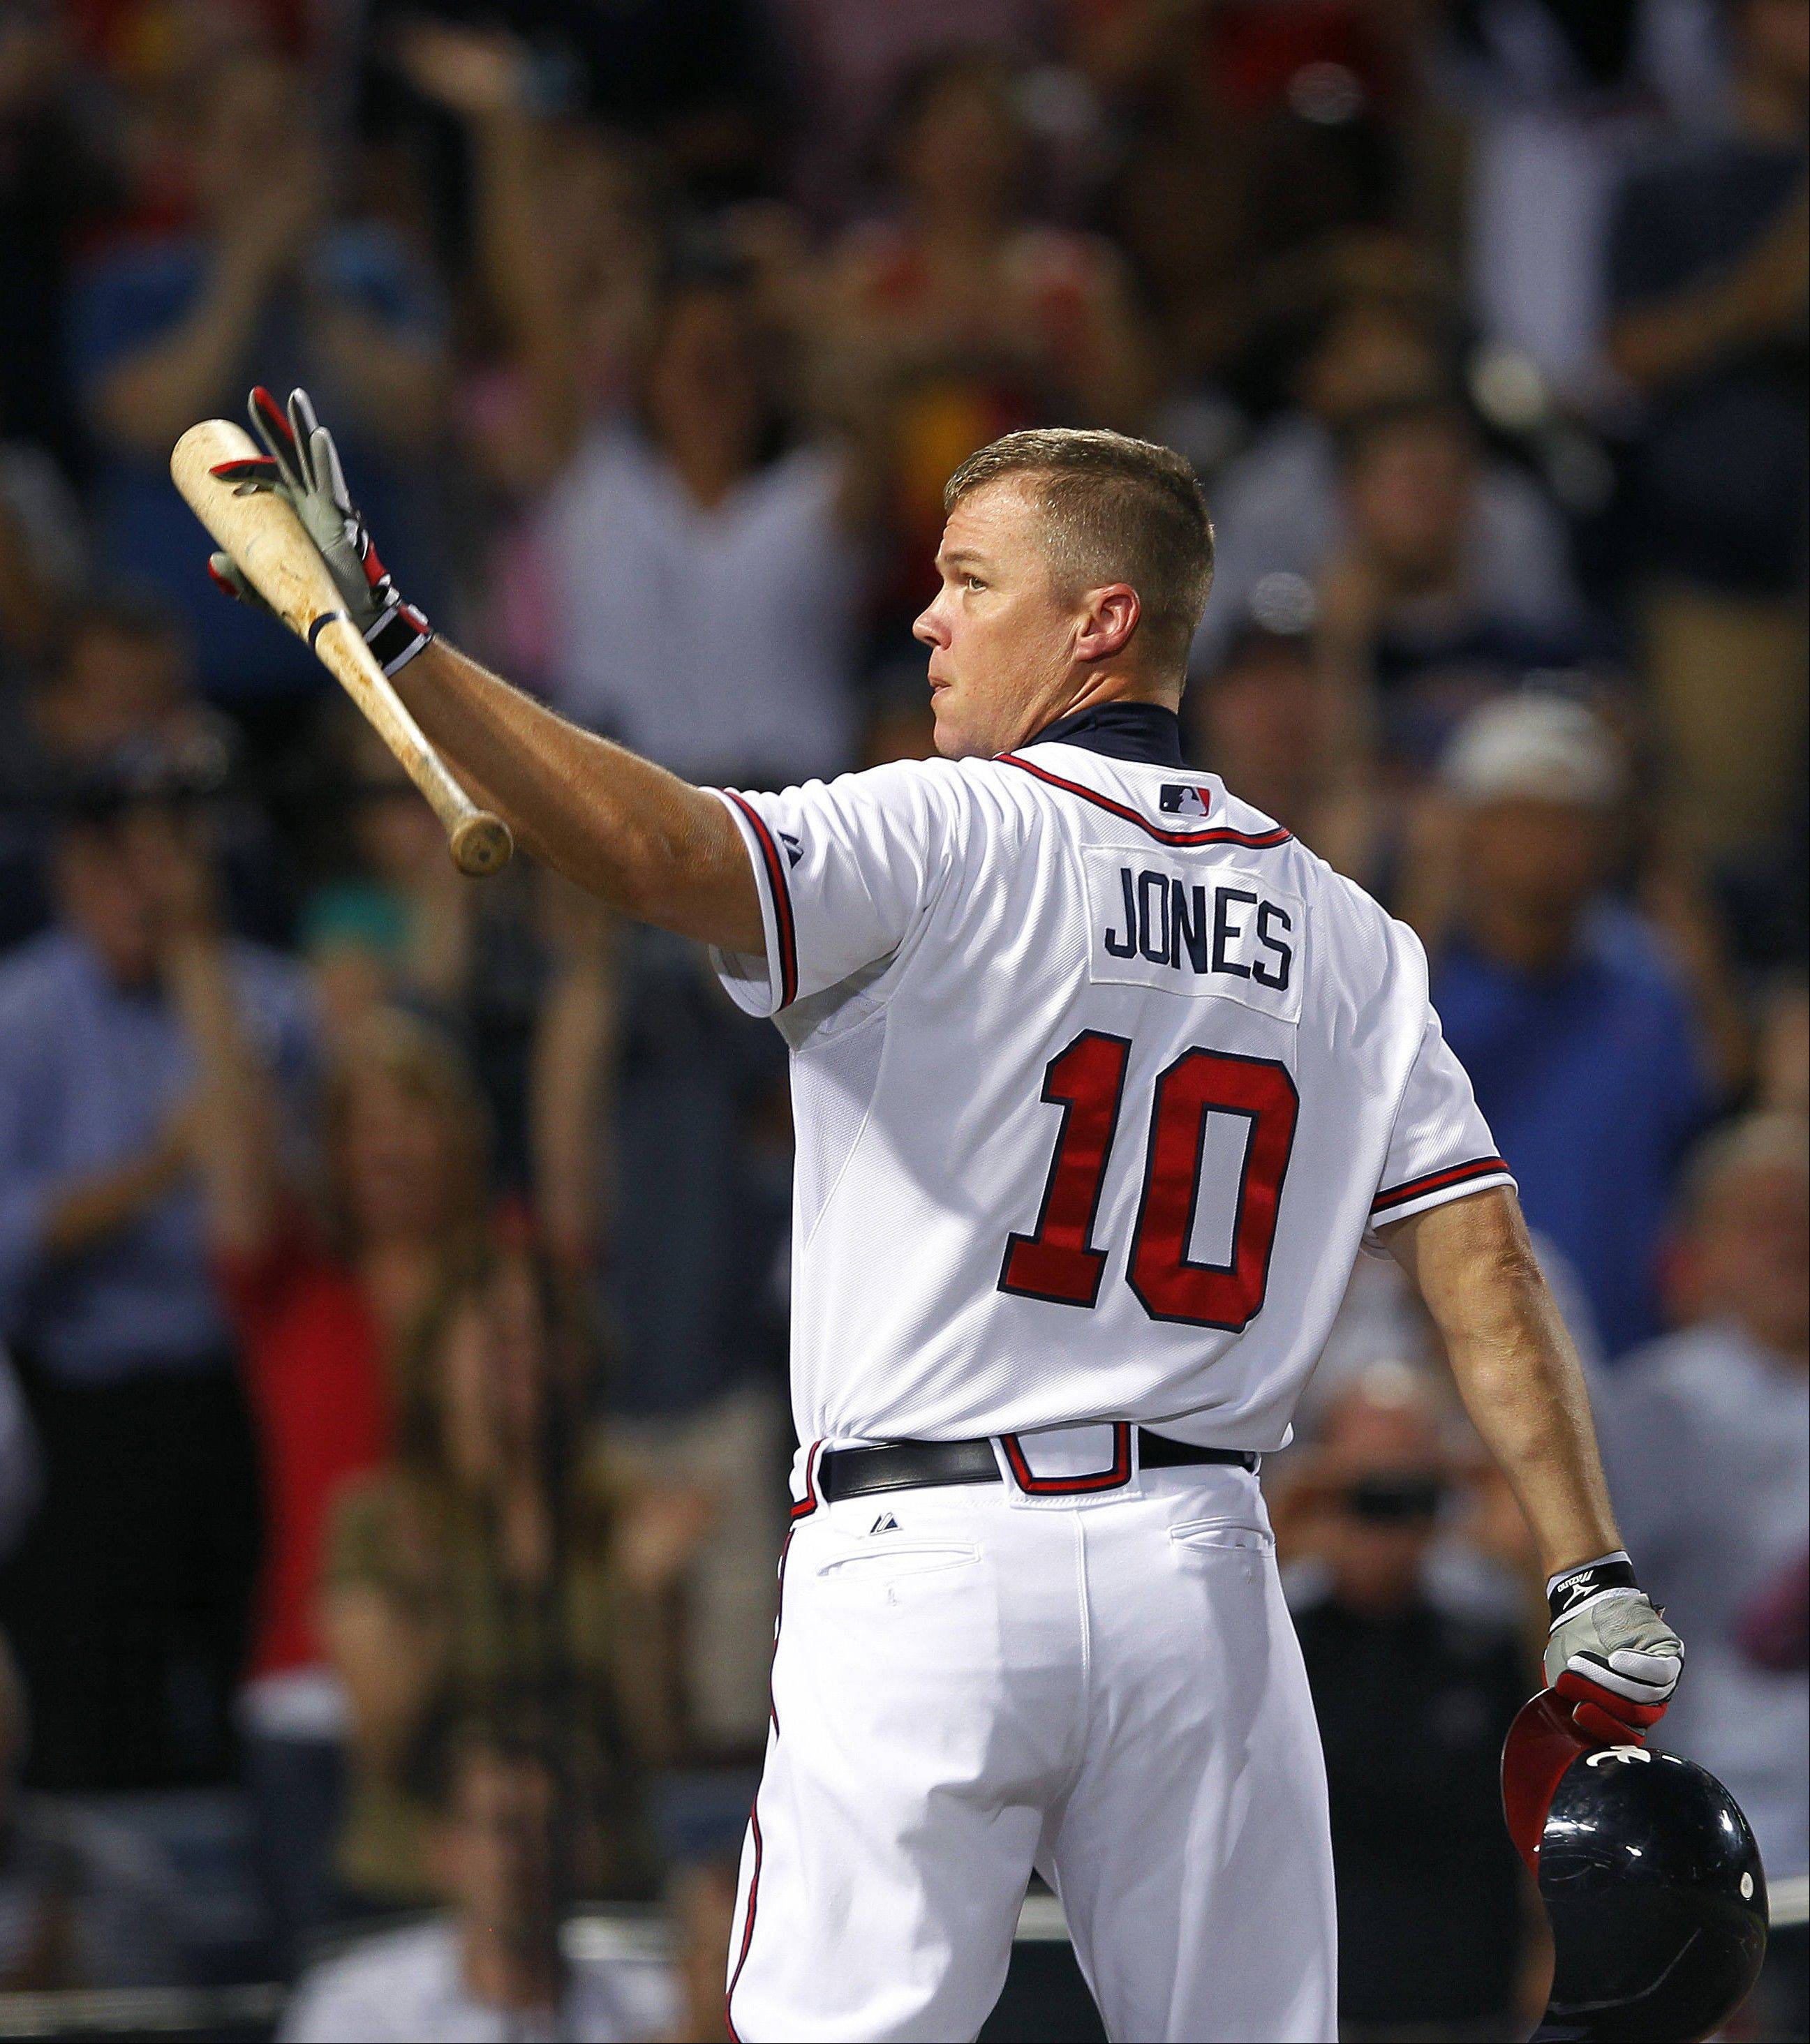 Braves third baseman Chipper Jones waves to the crowd before batting in the second inning Thursday against the Miami Marlins in Atlanta.